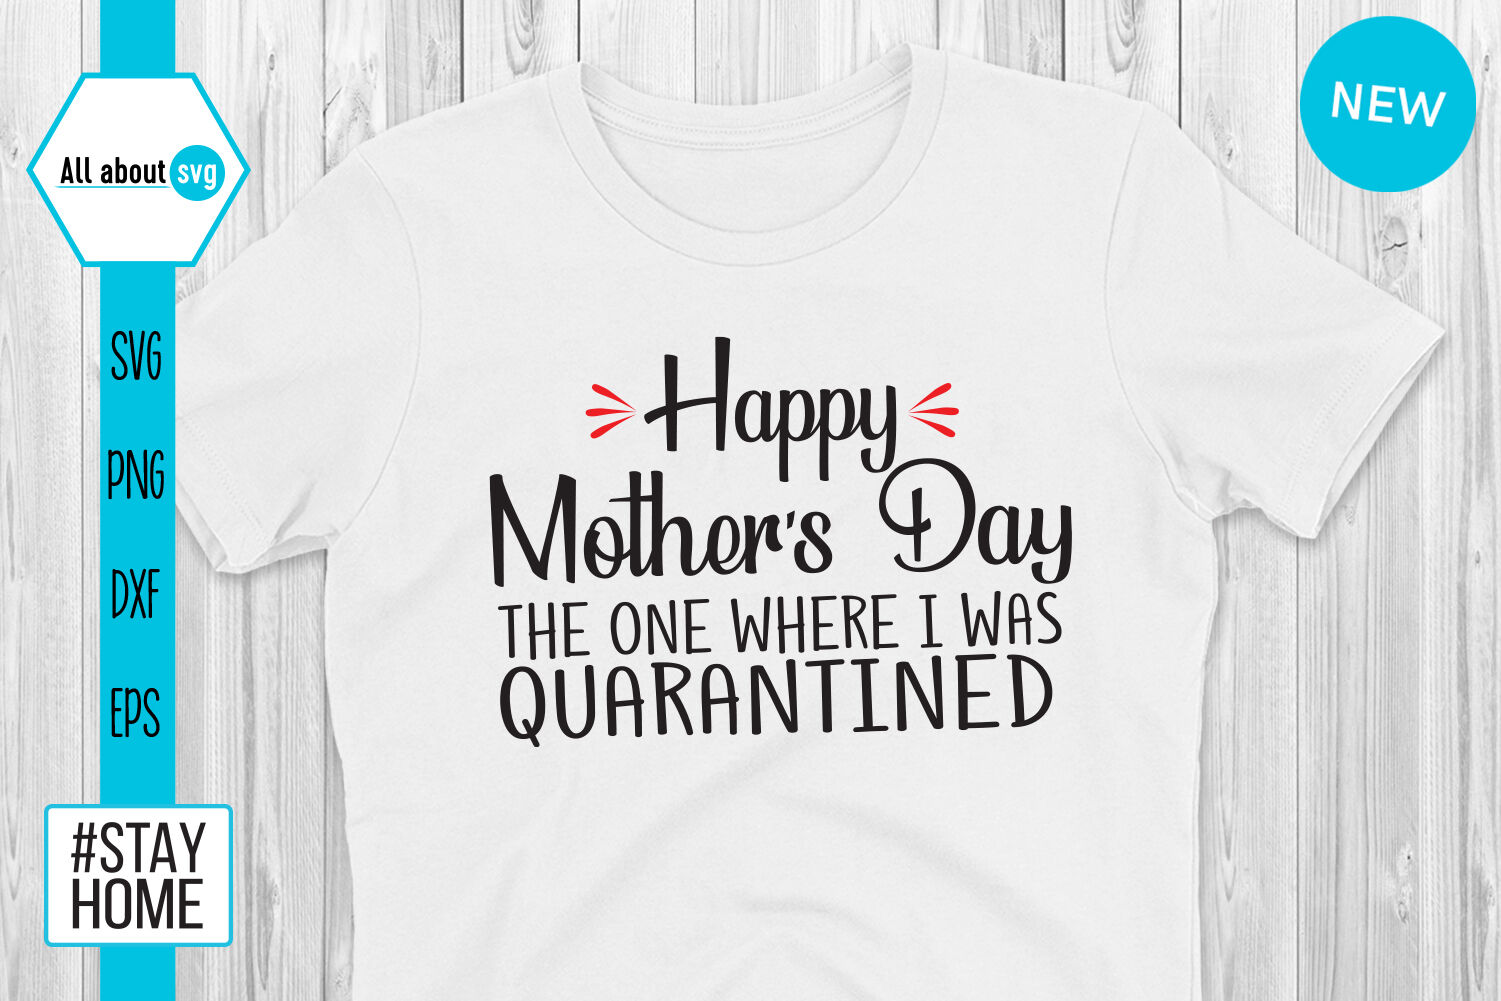 Free Browse our mother day images, graphics, and designs from +79.322 free vectors graphics. Happy Quarantined Mothers Day Svg By All About Svg Thehungryjpeg Com SVG, PNG, EPS, DXF File